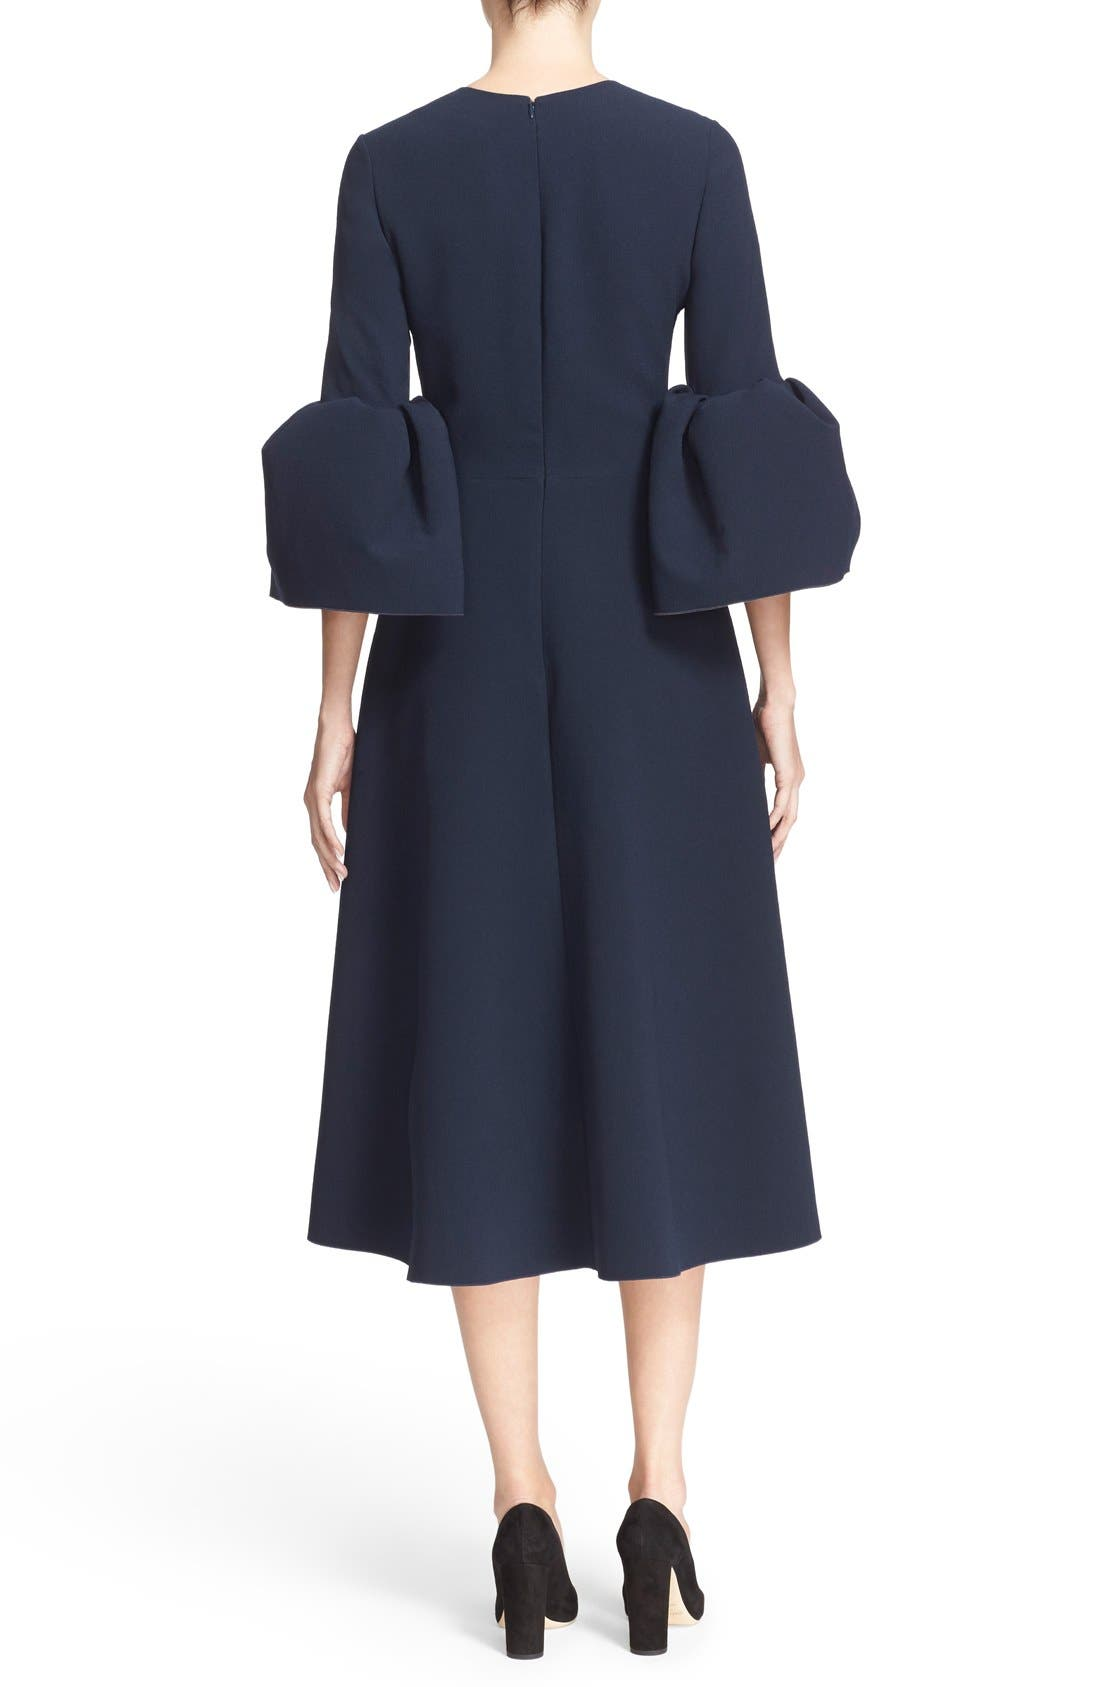 Turlin Flounce Sleeve Midi Dress,                             Alternate thumbnail 2, color,                             Navy/ Ochre